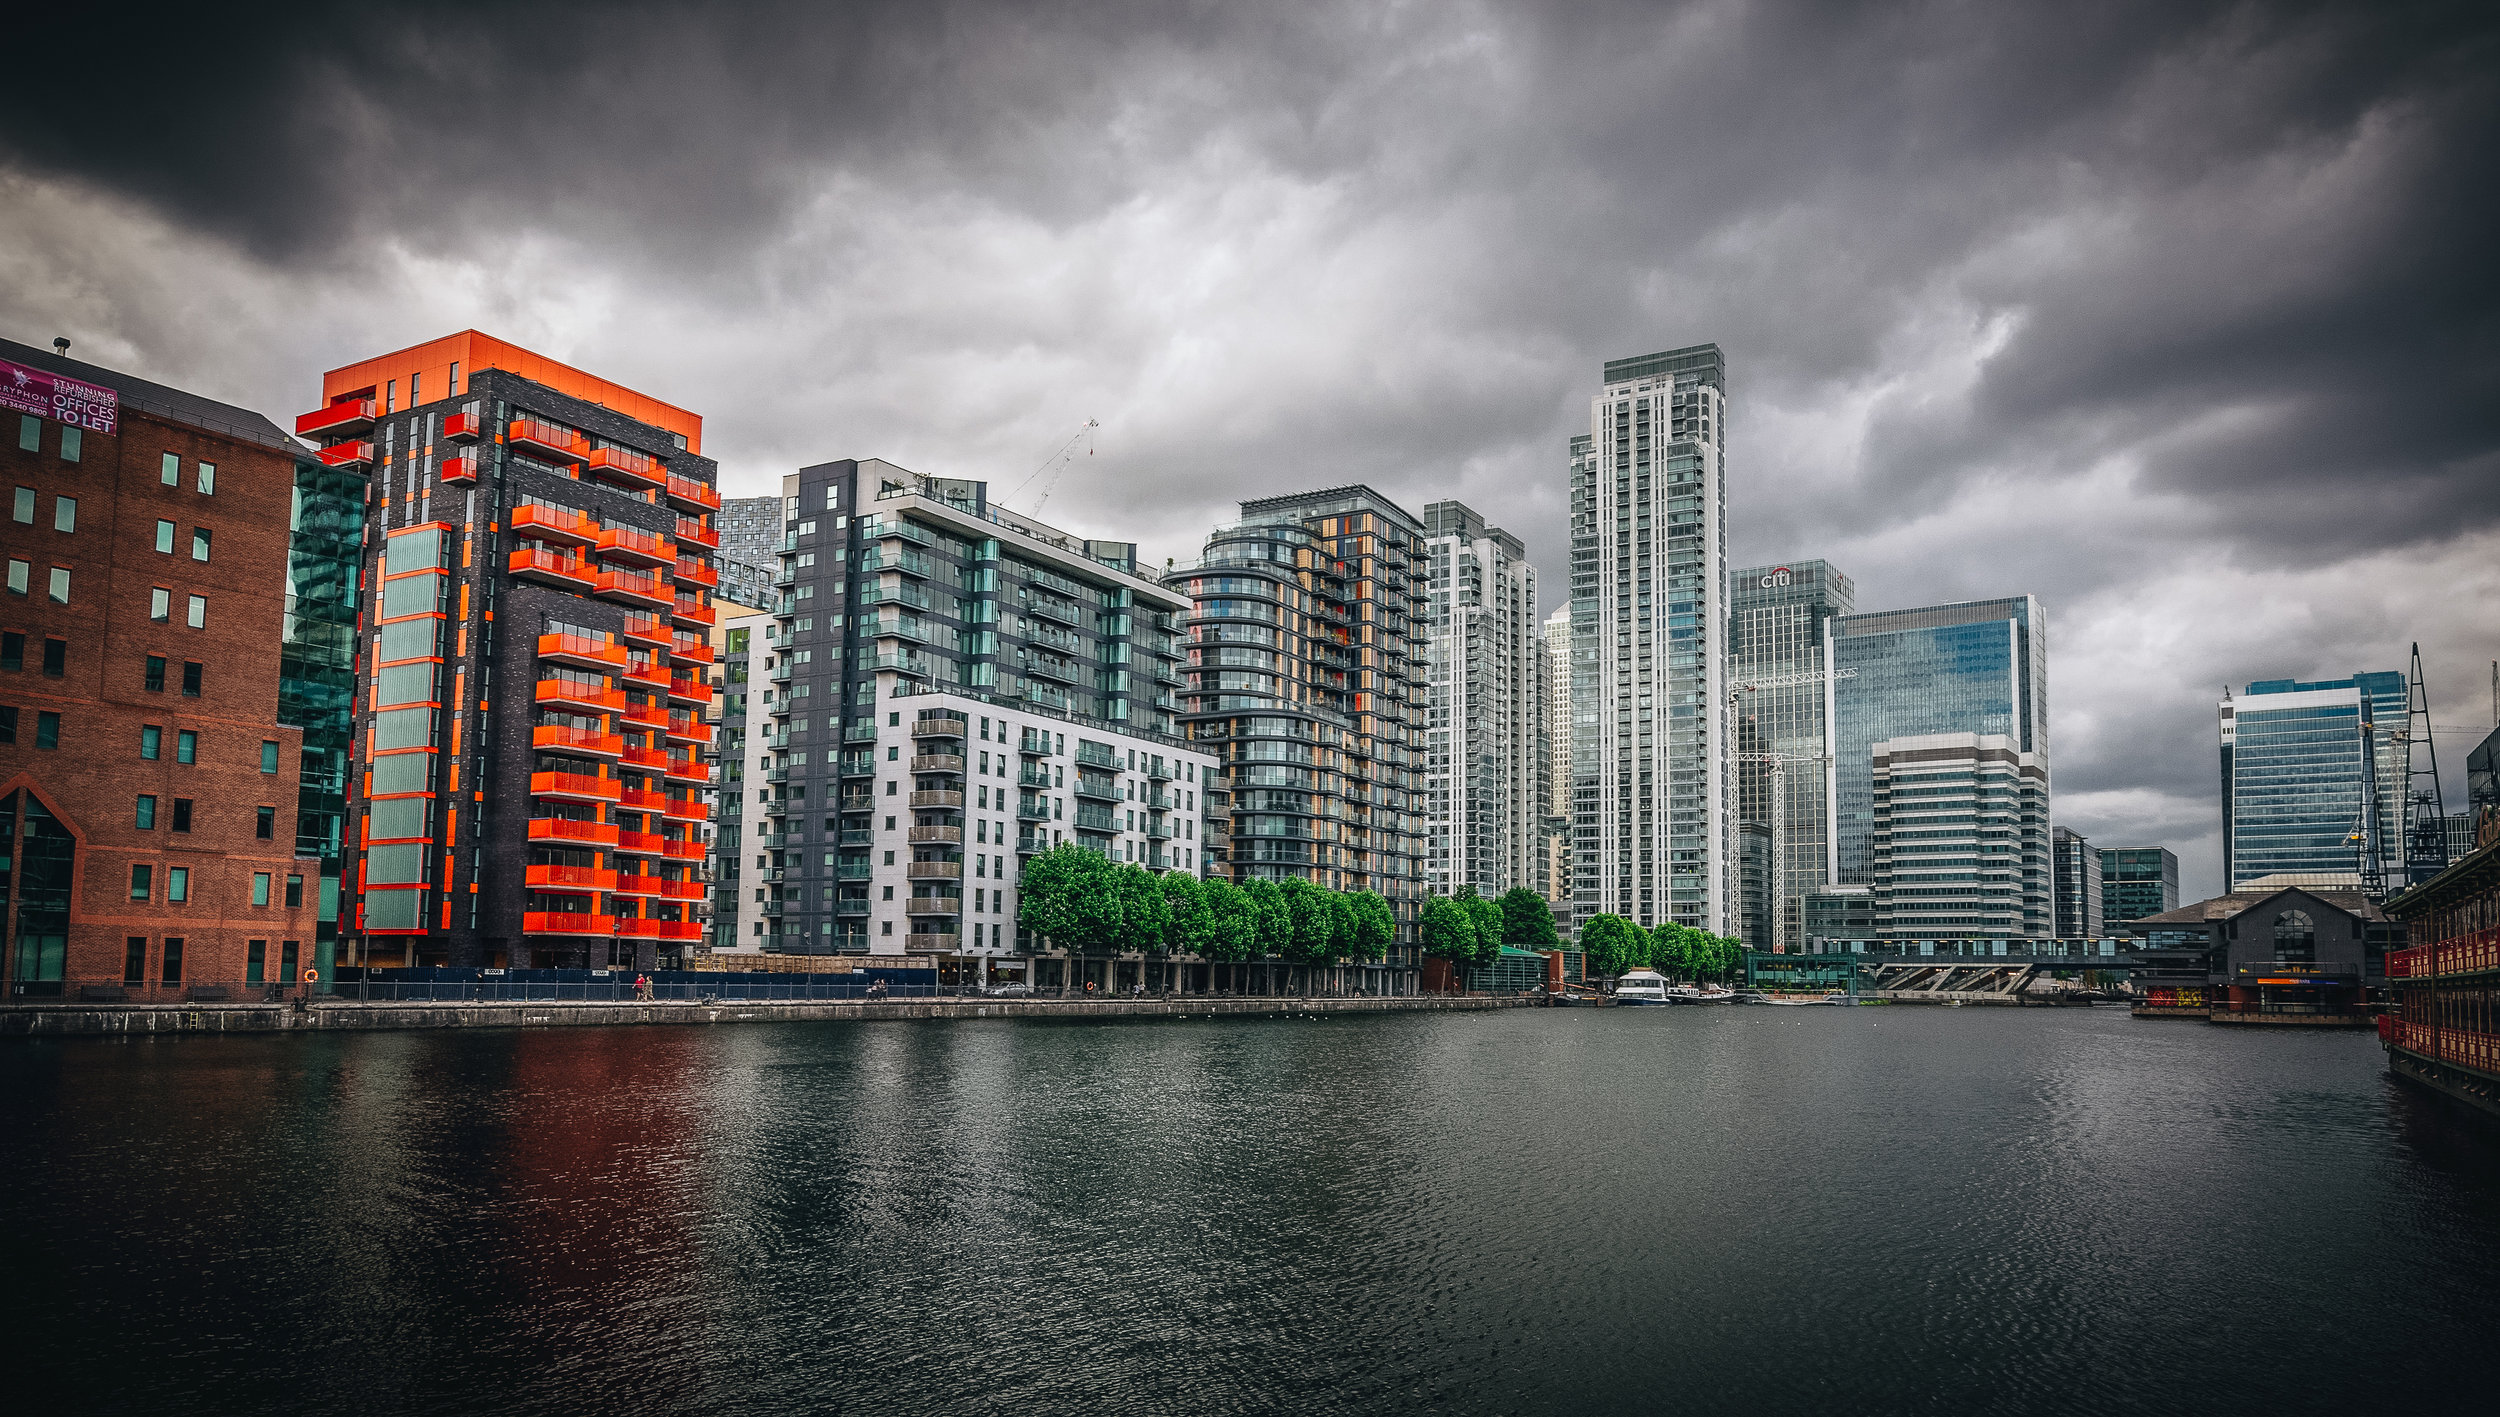 The Isle of Dogs lends itself well to cloudy days.